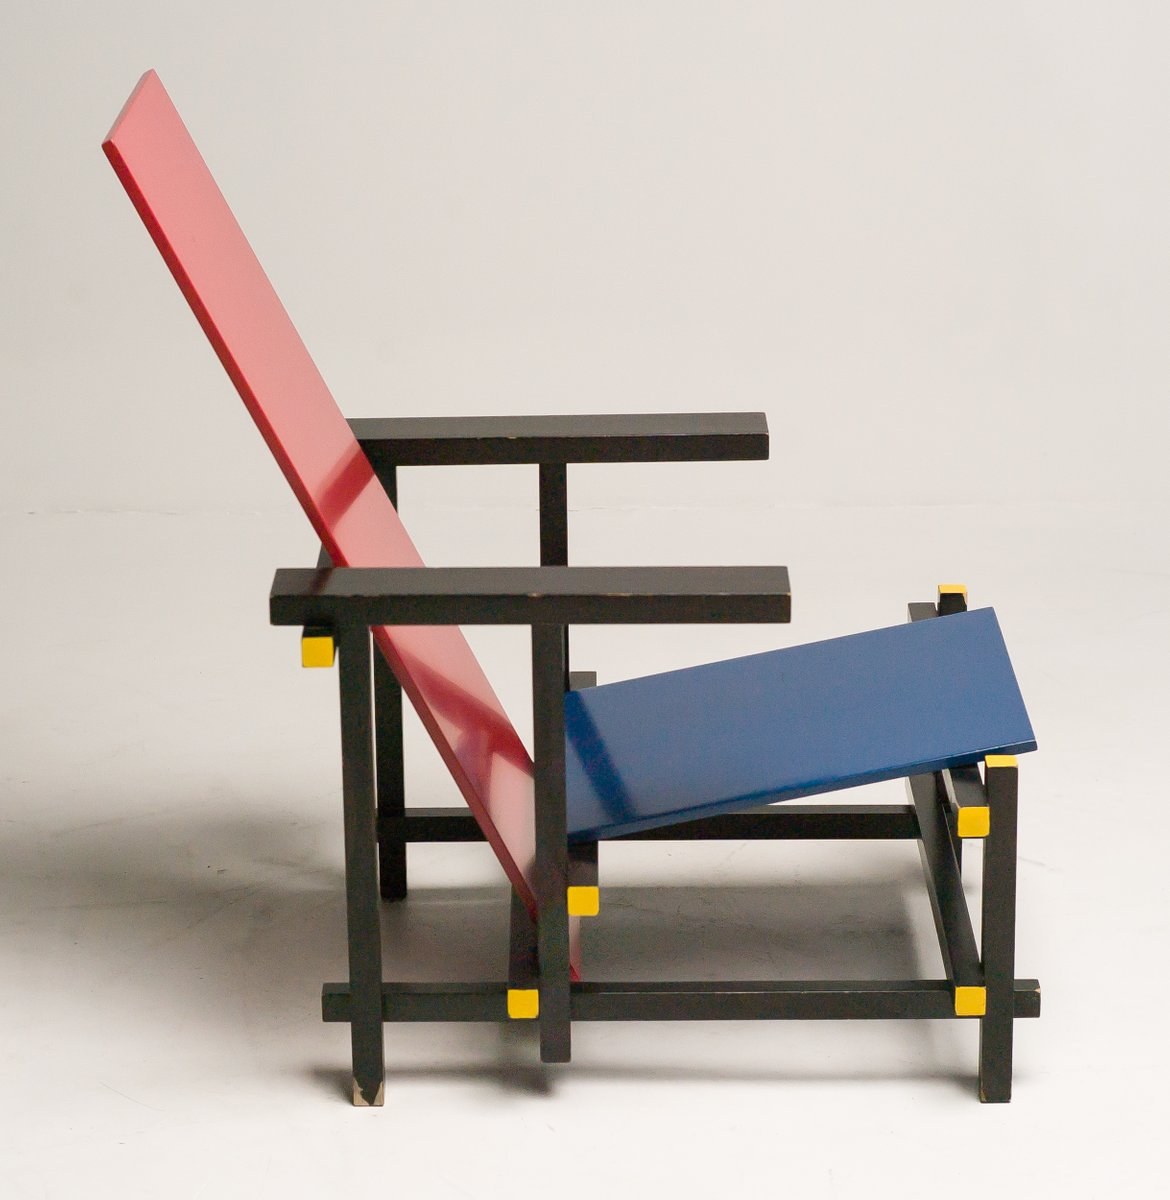 Red And Blue Chair By Gerrit Thomas Rietveld For Cassina